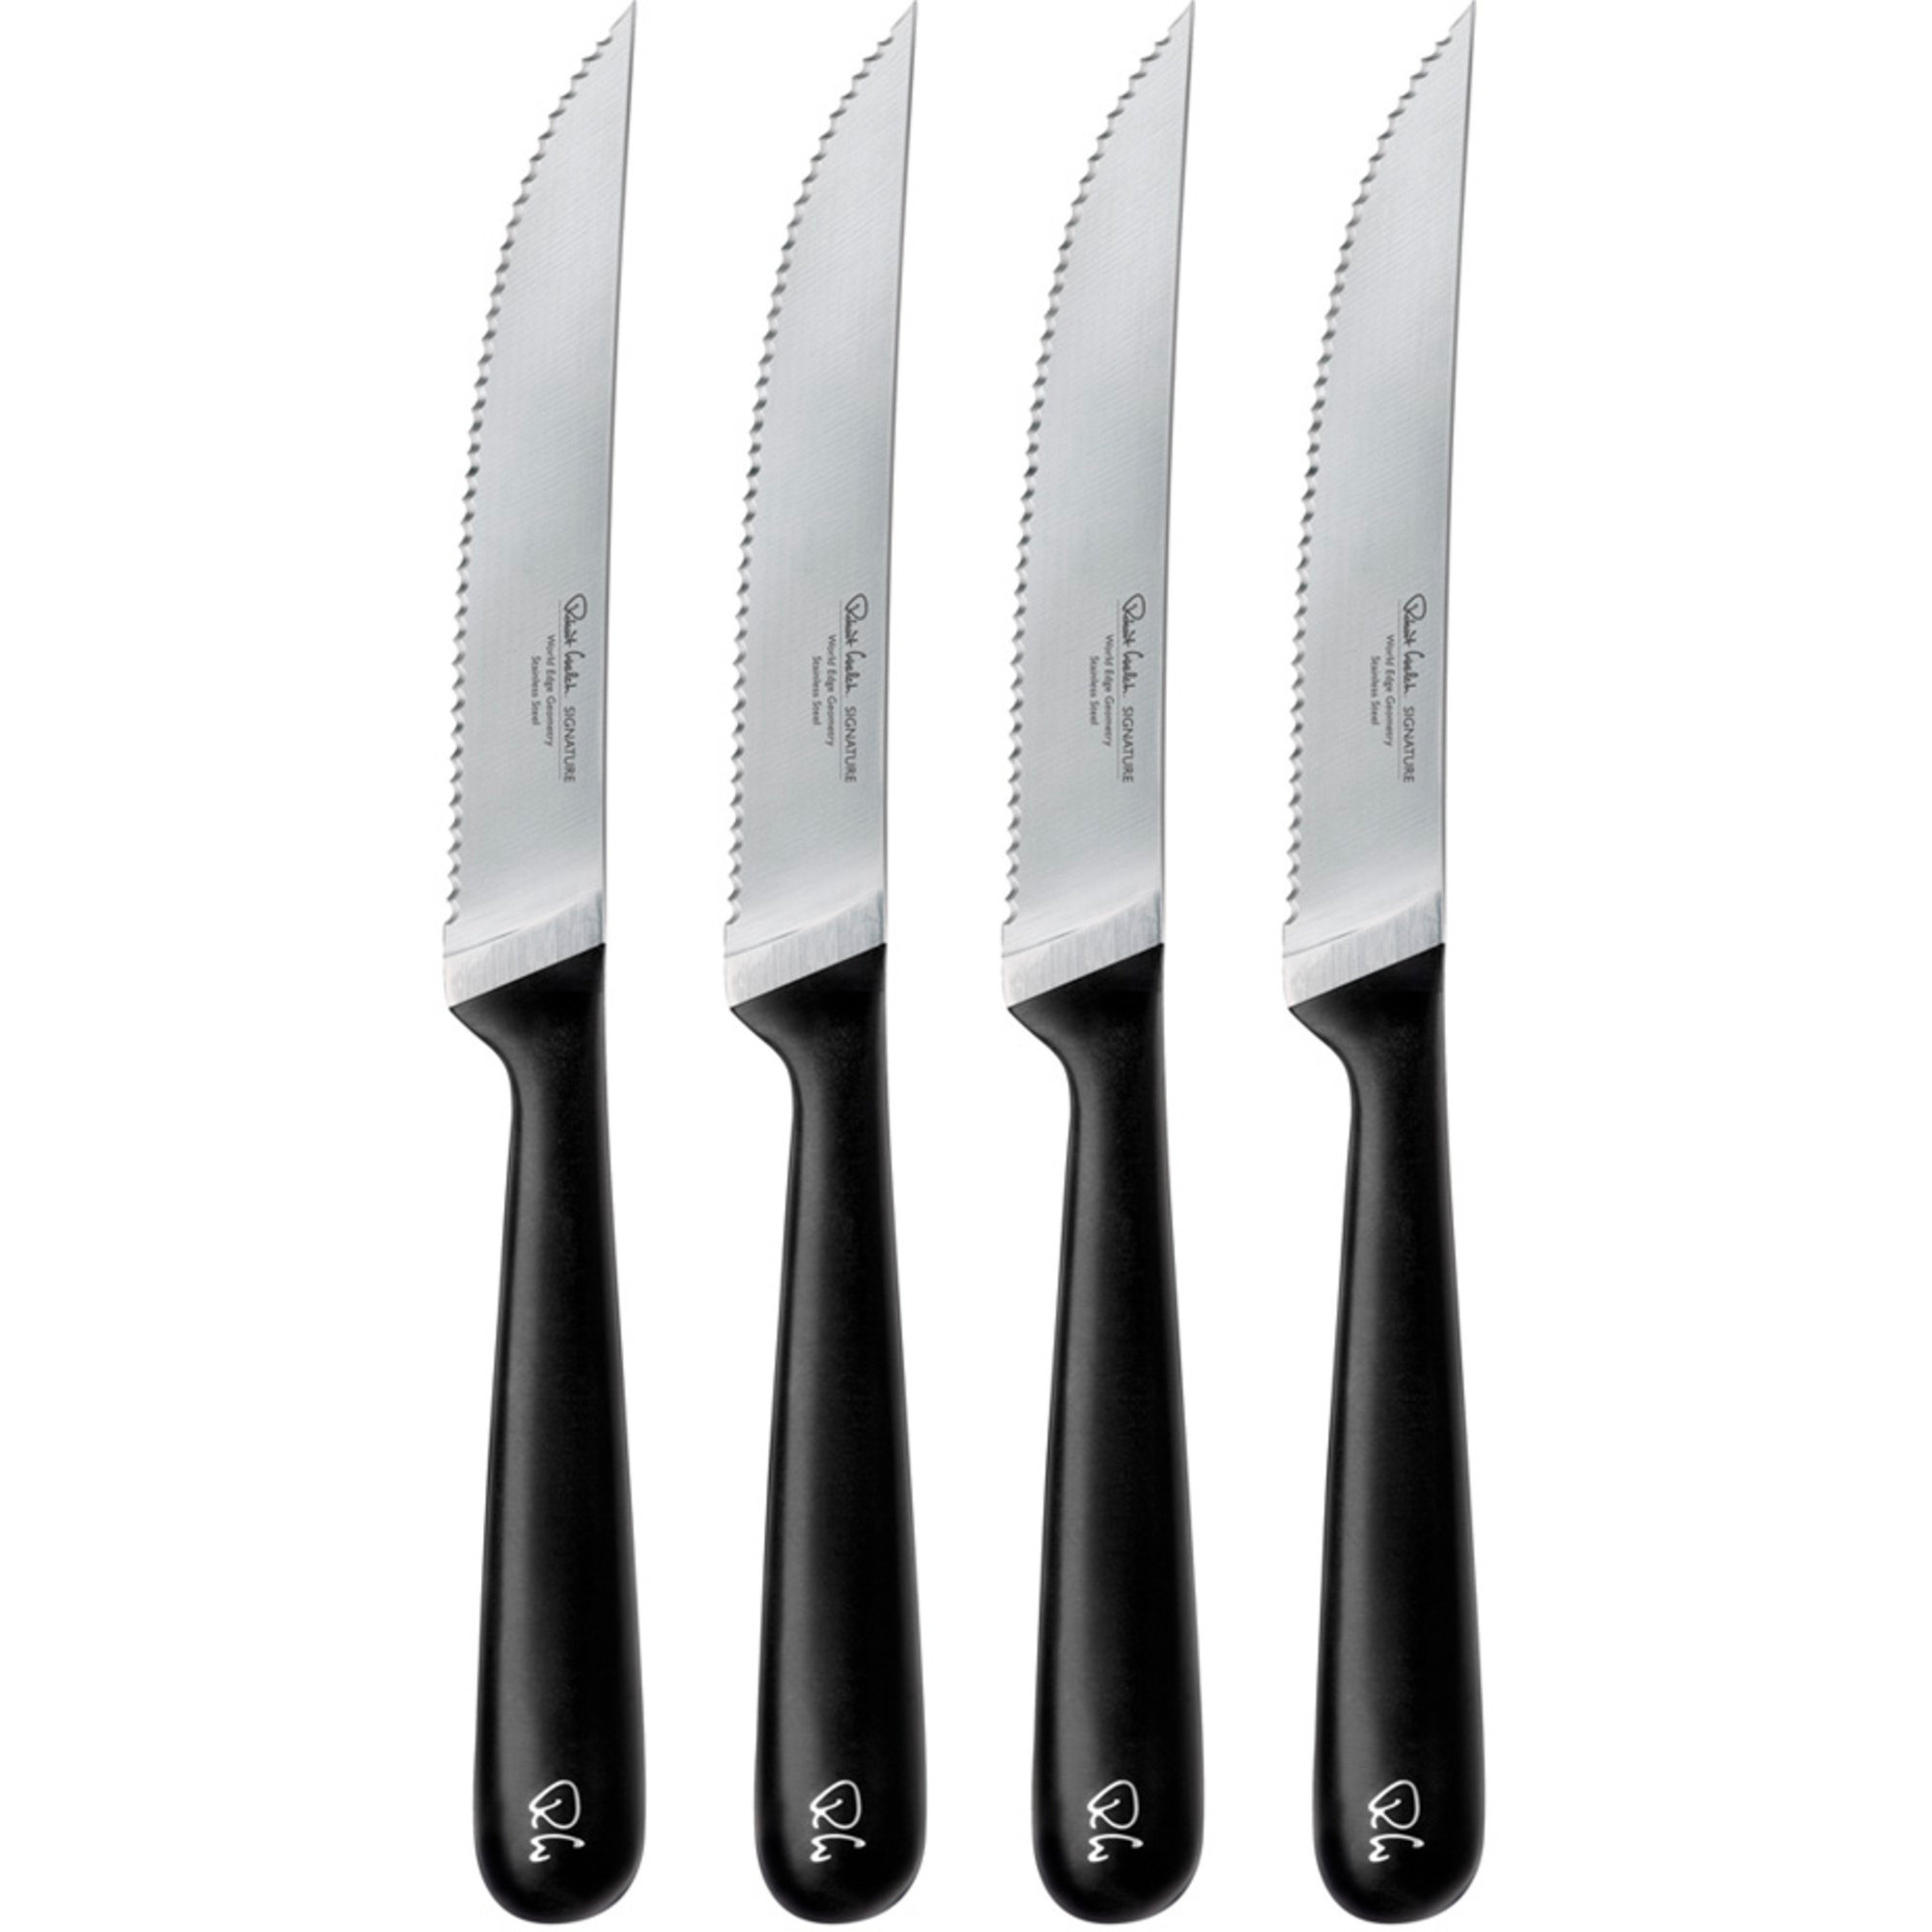 Robert Welch Signature Stekkniv Tandad 4-pack